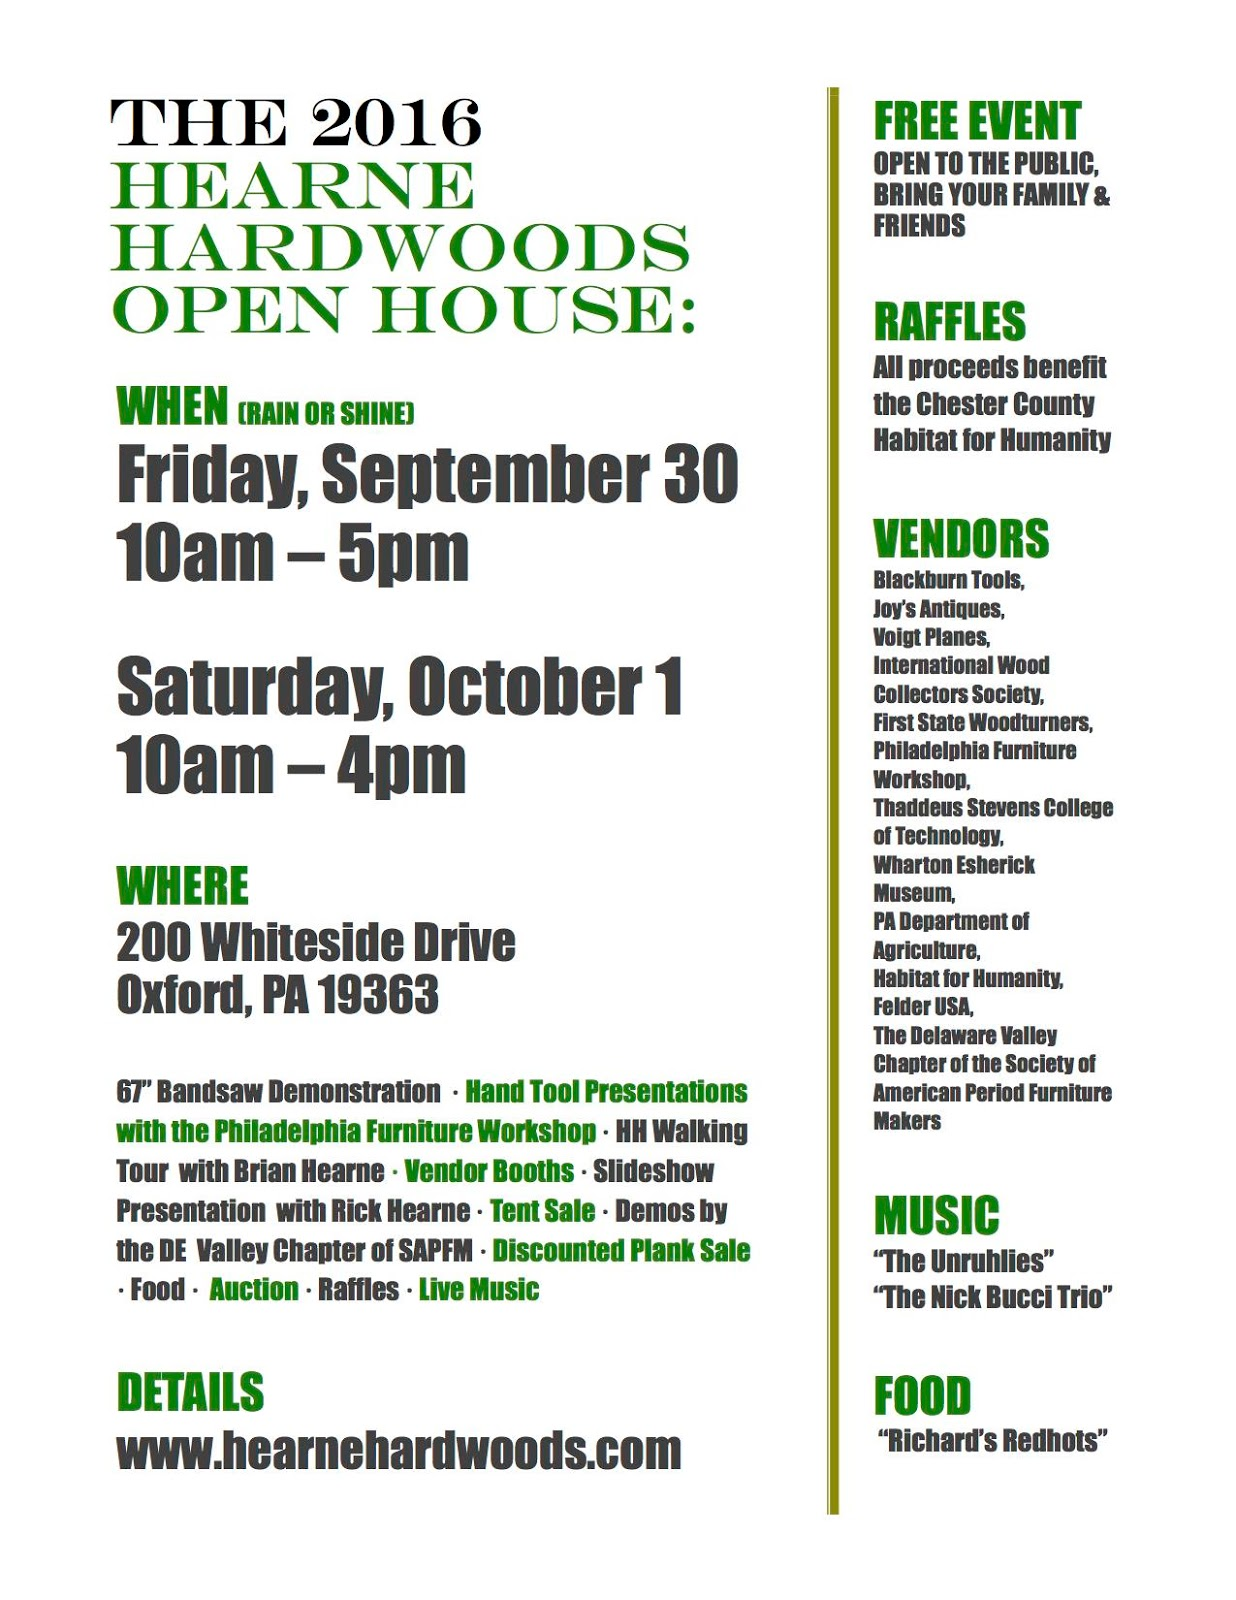 At Hearne Hardwoods This Weekend